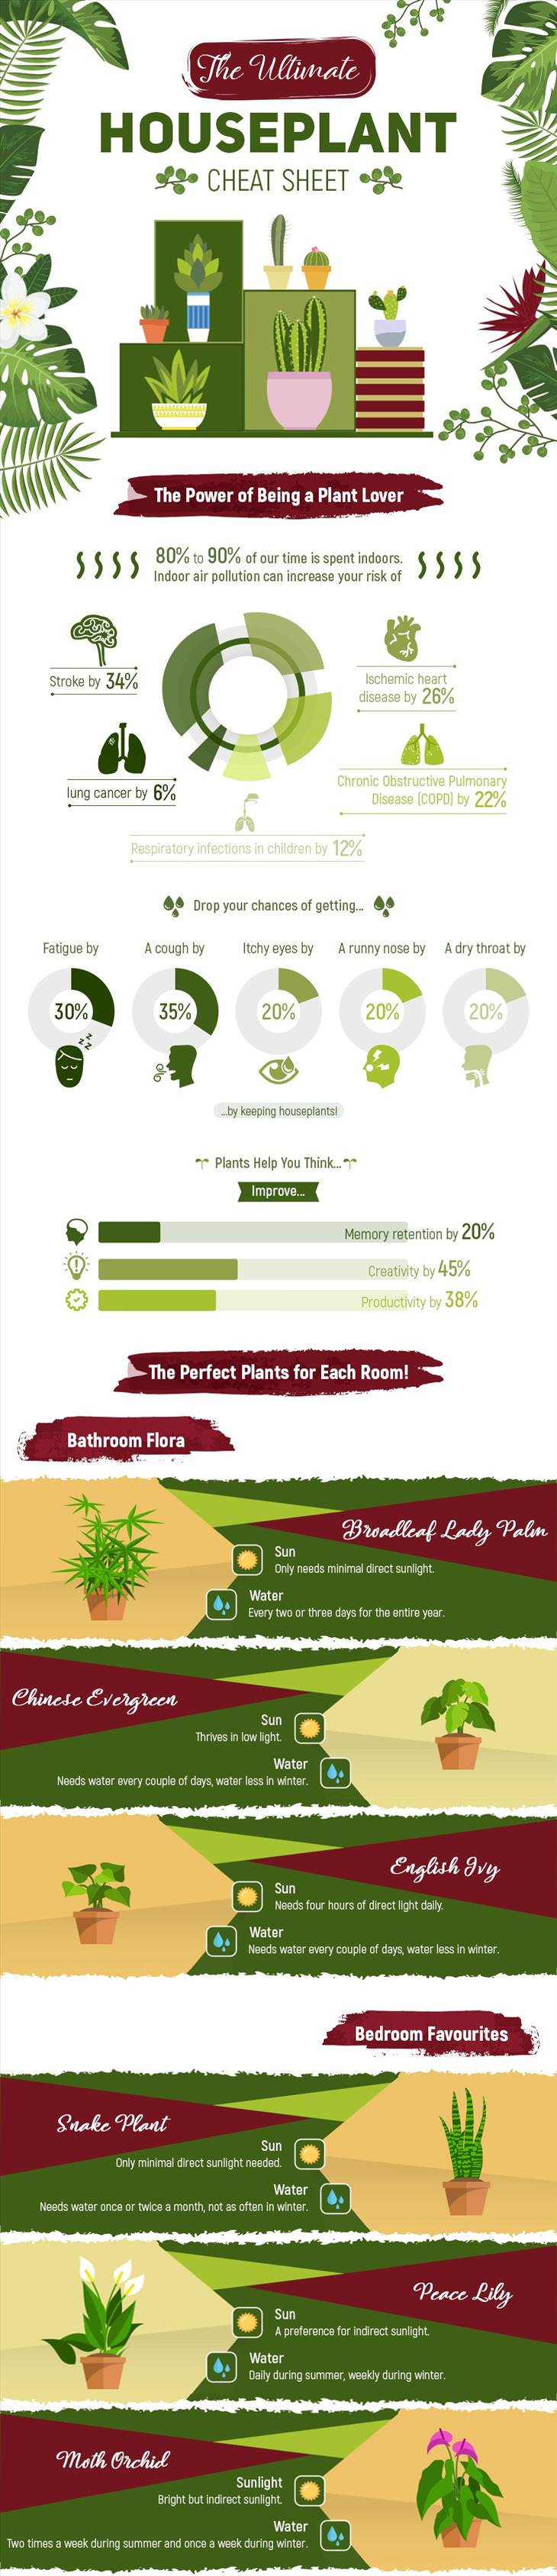 house plant infographic